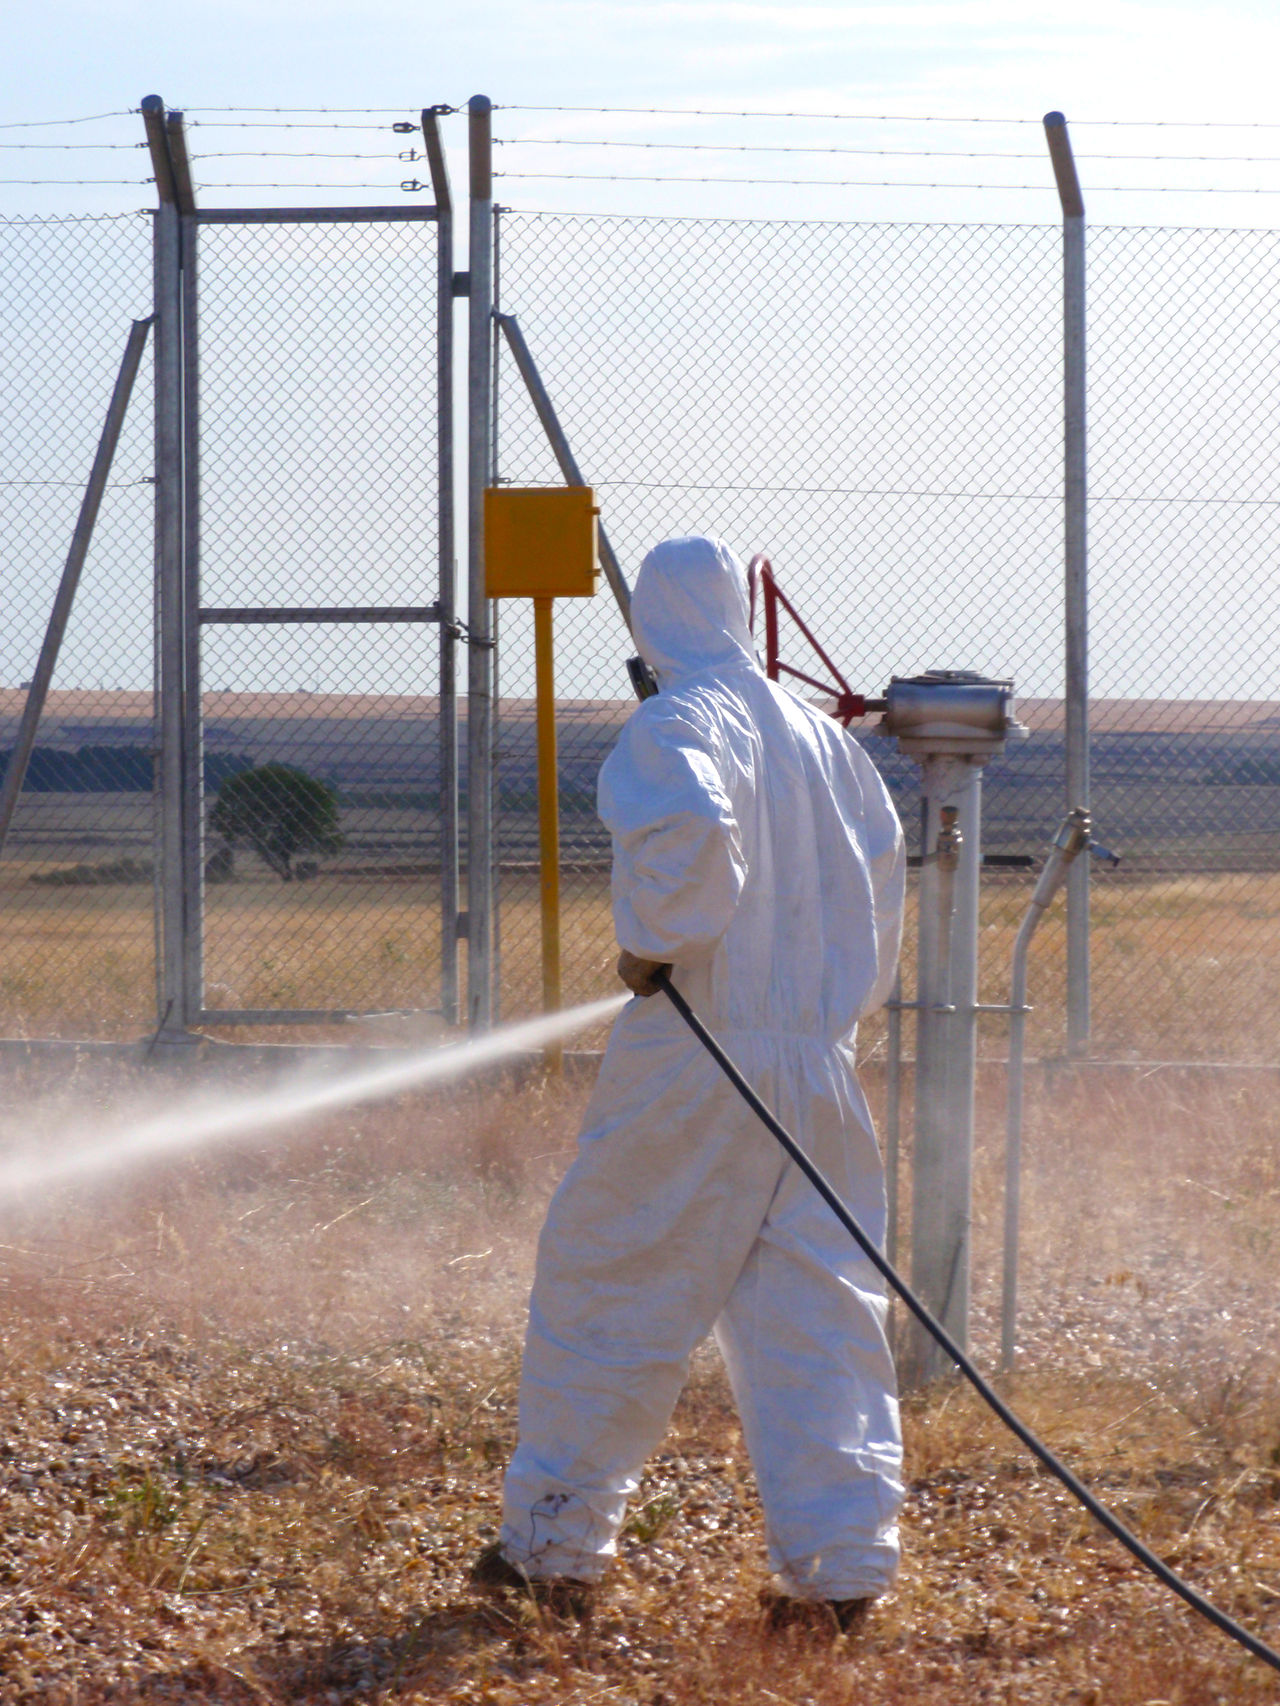 Fumigate Fumigating Fumigation  Gas Gas Mask Herbicide Man Man Working One Person Pest Pest Control Pipeline Plague Poison Poisonous Pulverize Real People Safety Security Spray Spraying Toxic Work Place Working Workplace